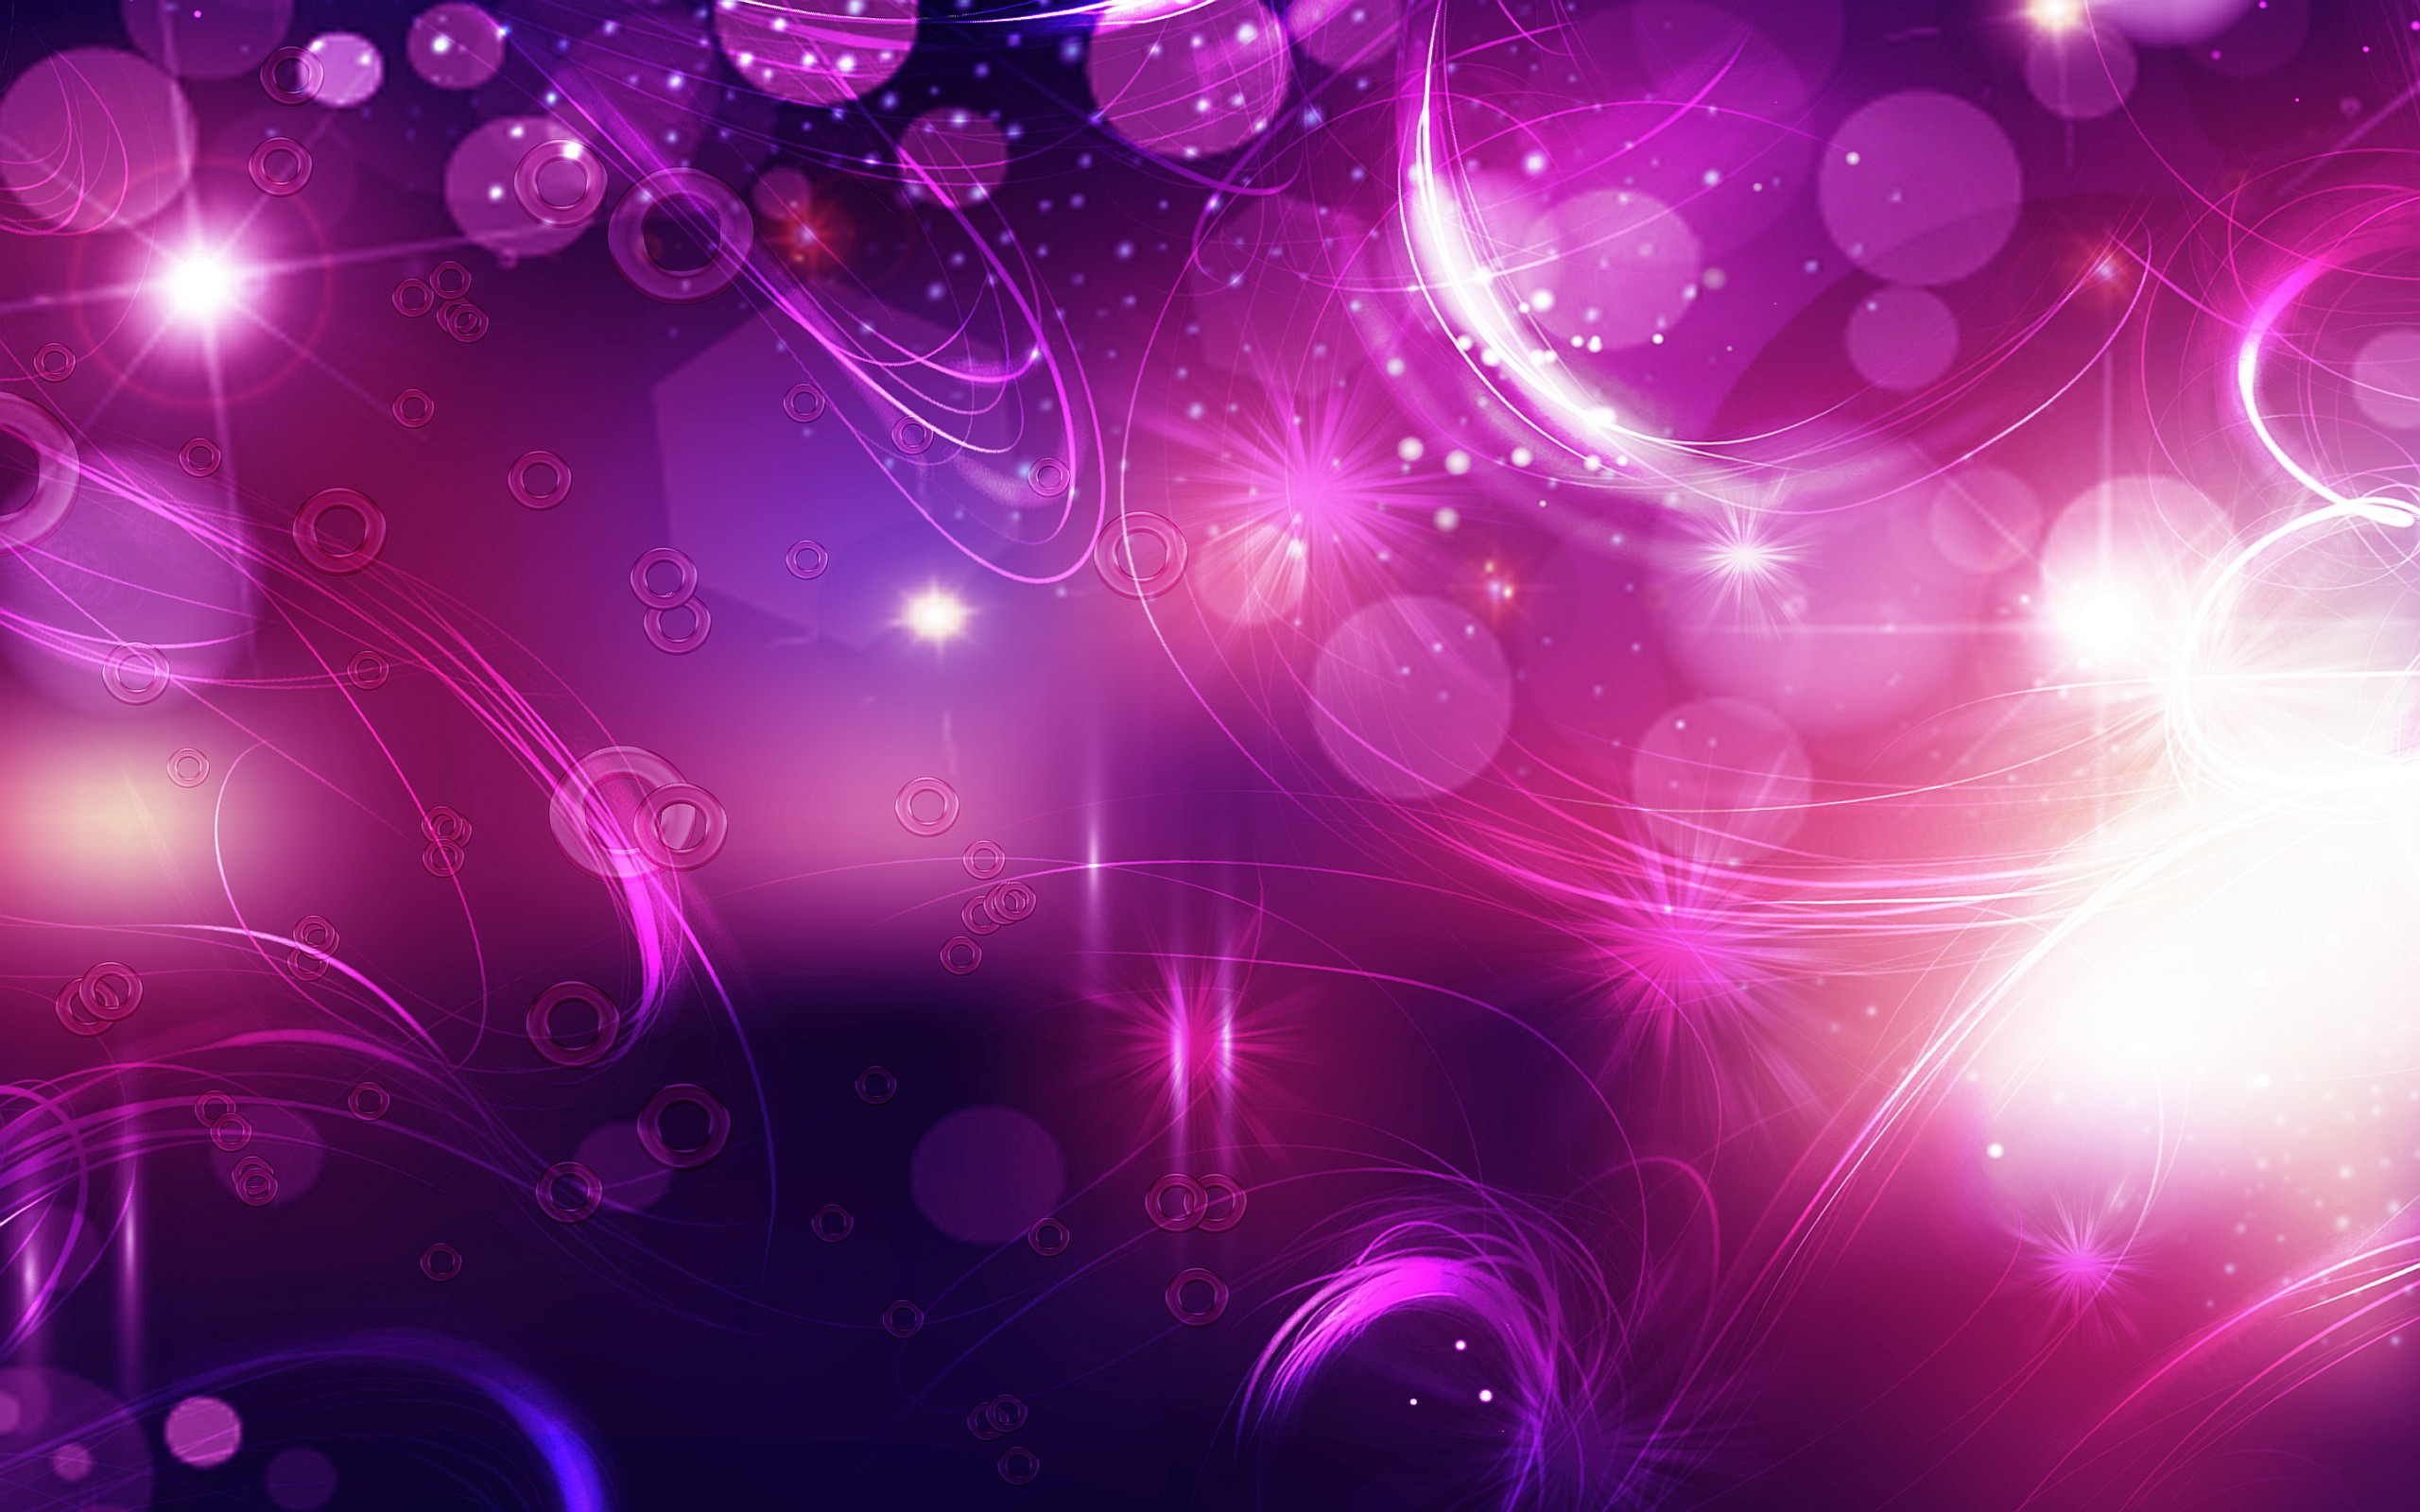 2560x1600 purple wallpaper 3ed hd wallpapers high definition amazing cool apple mac  tablet free 2560×1600 Wallpaper HD